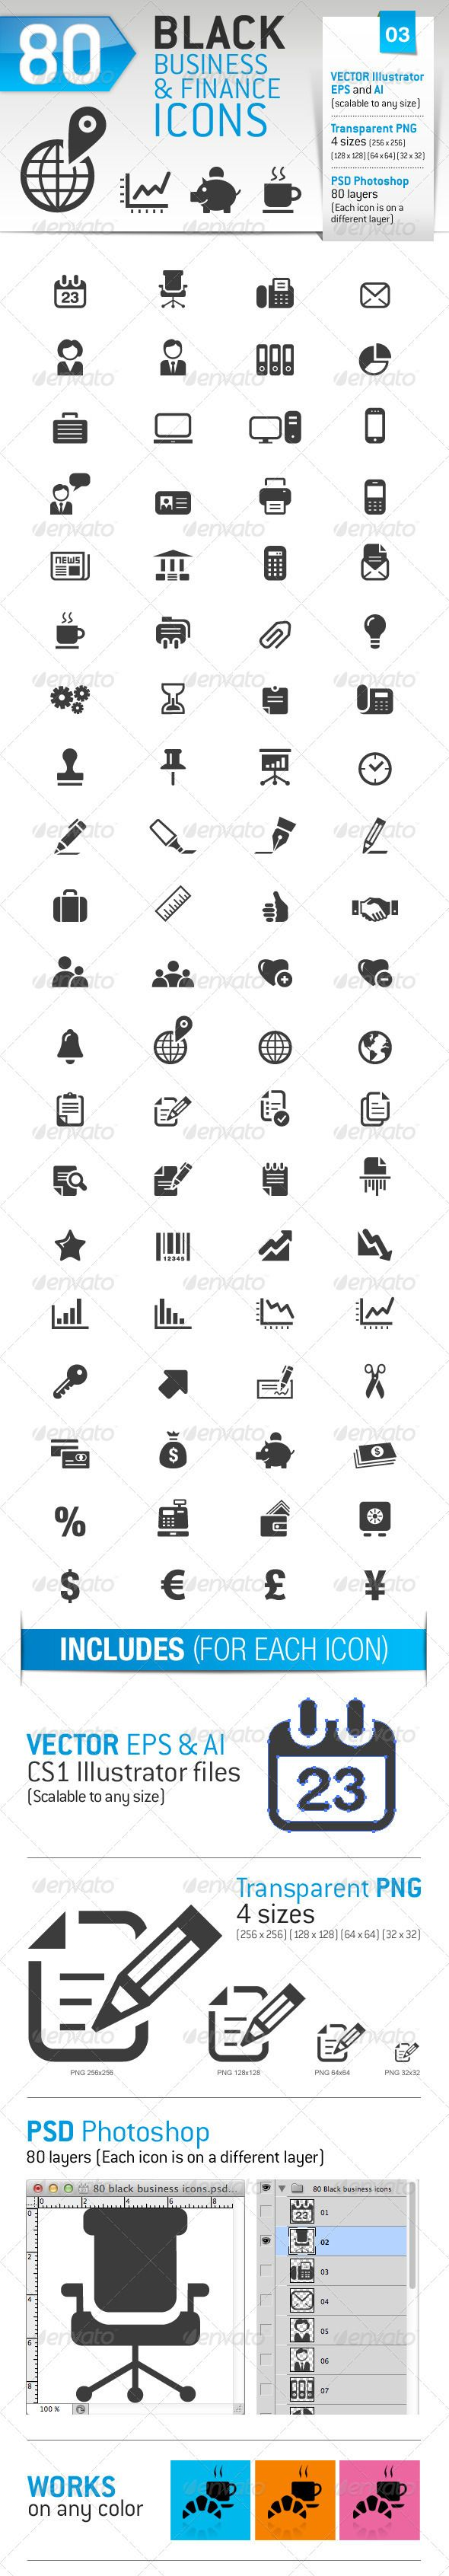 80+Black+Business+and+Finance+Icons